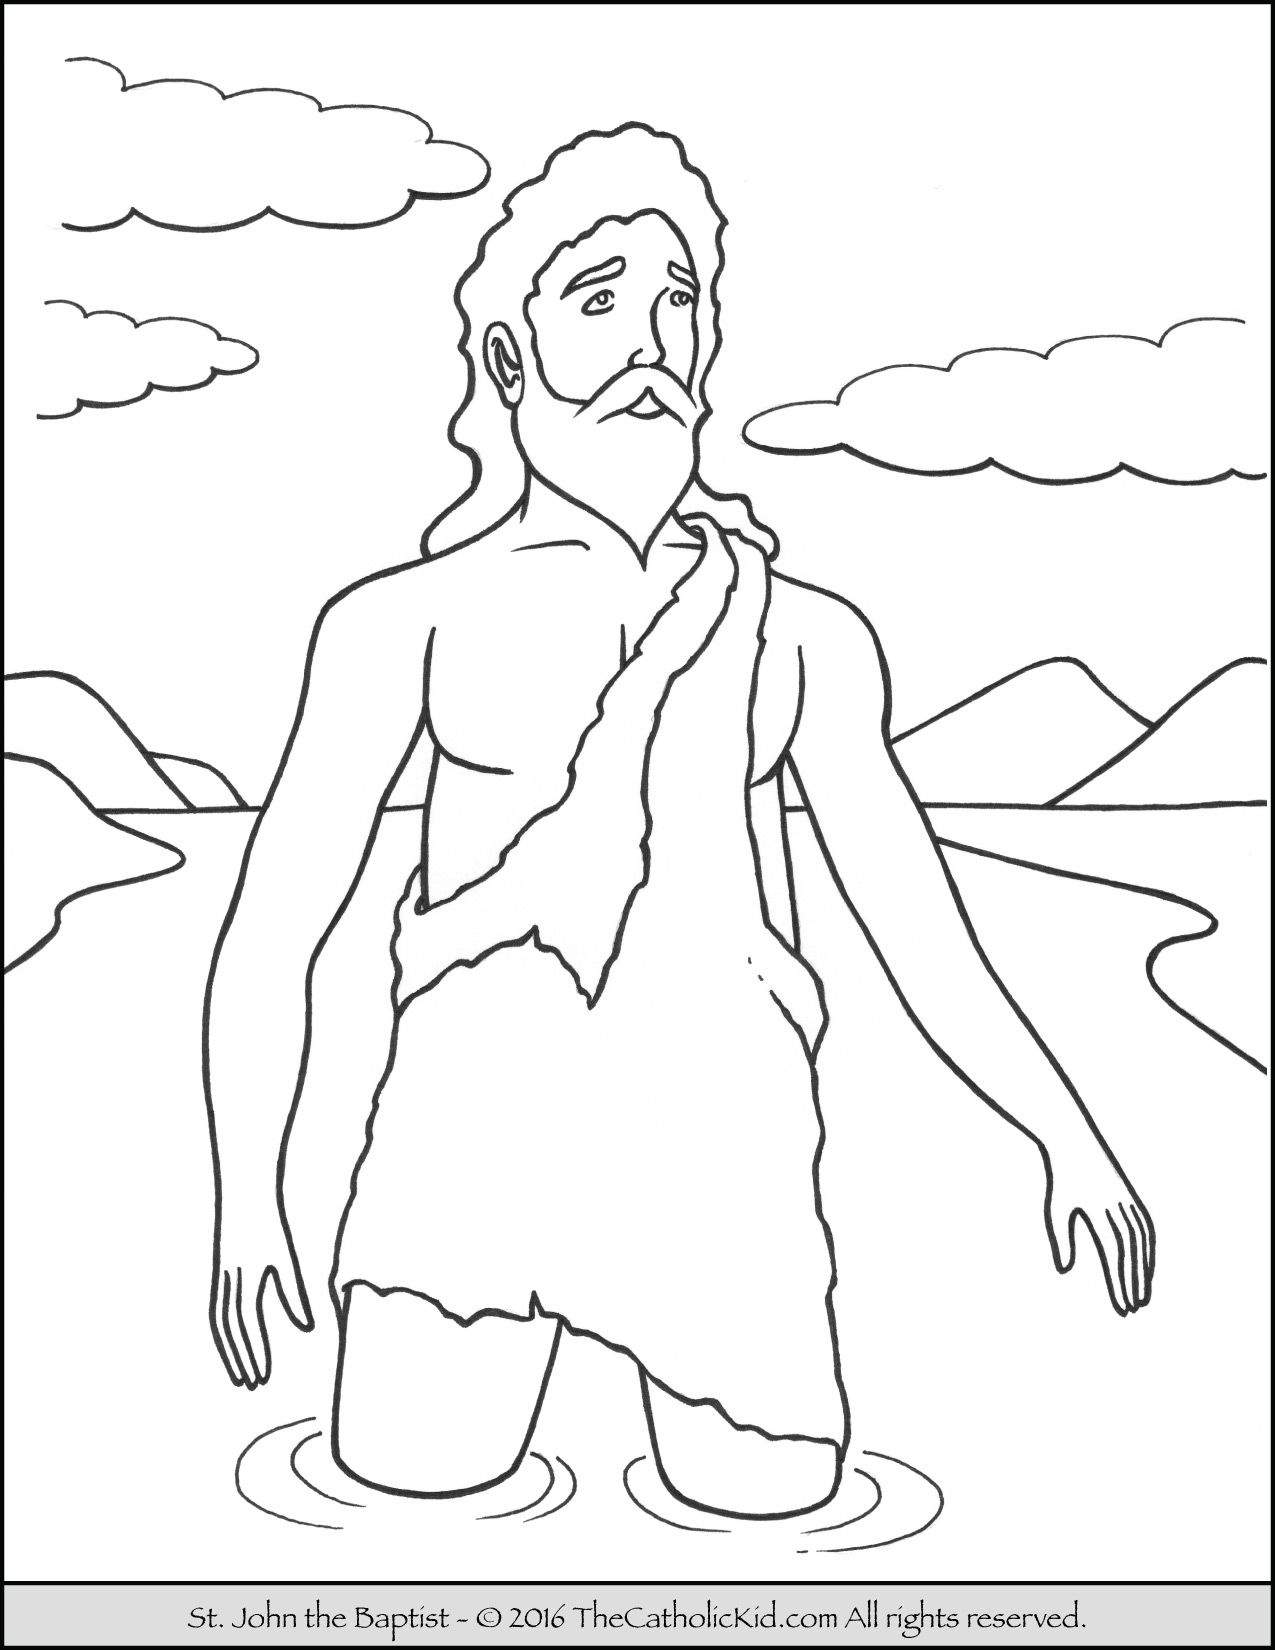 Saint John The Baptist Coloring Pages The Catholic Kid John The Baptist Coloring Pages Mermaid Coloring Pages